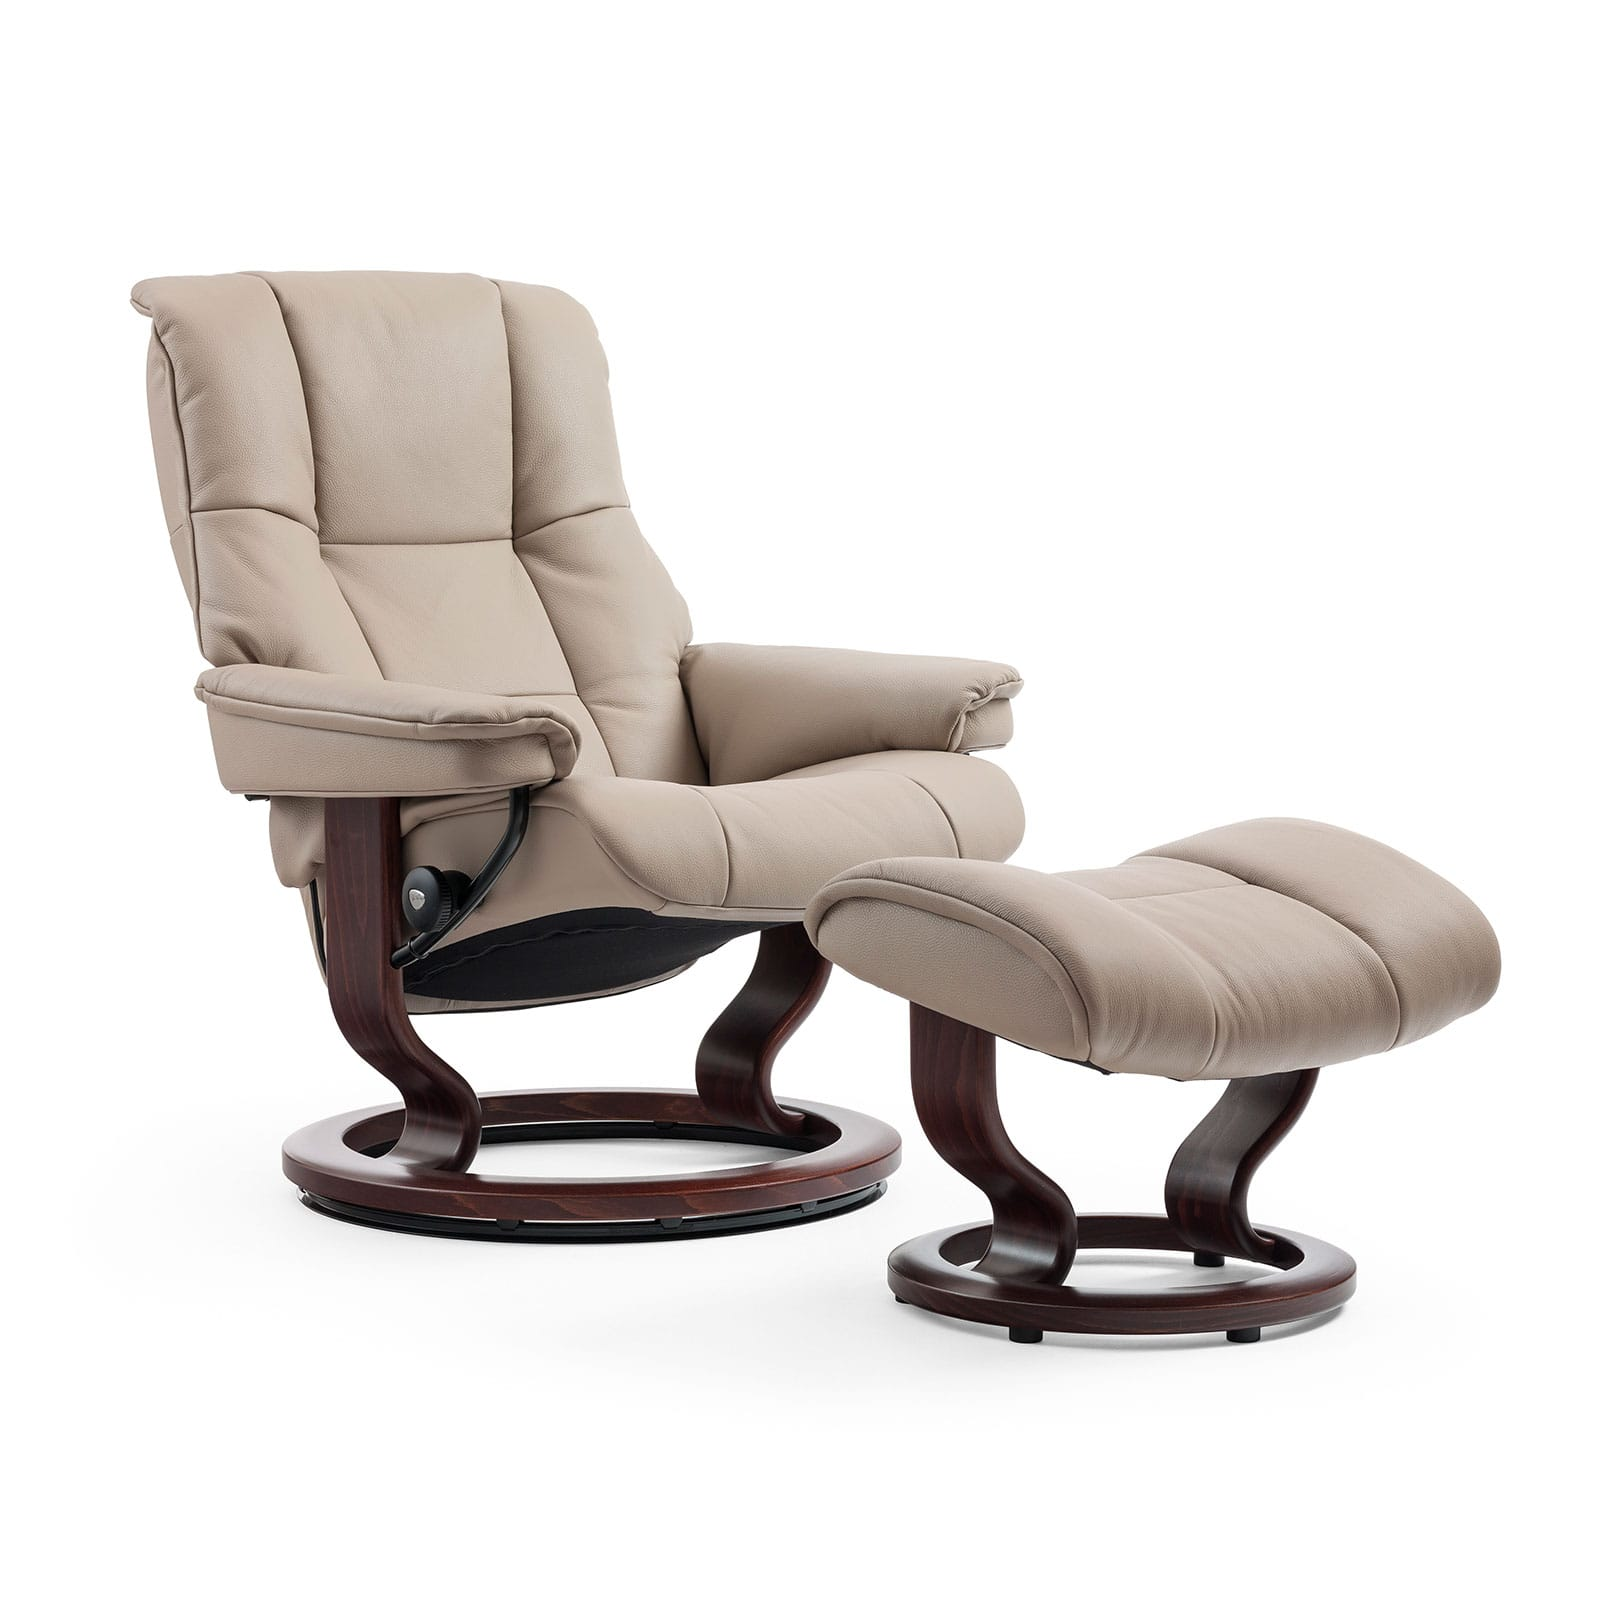 Sessel Leder Beige Stressless Sessel Mayfair Leder Cori Beige Mit Hocker